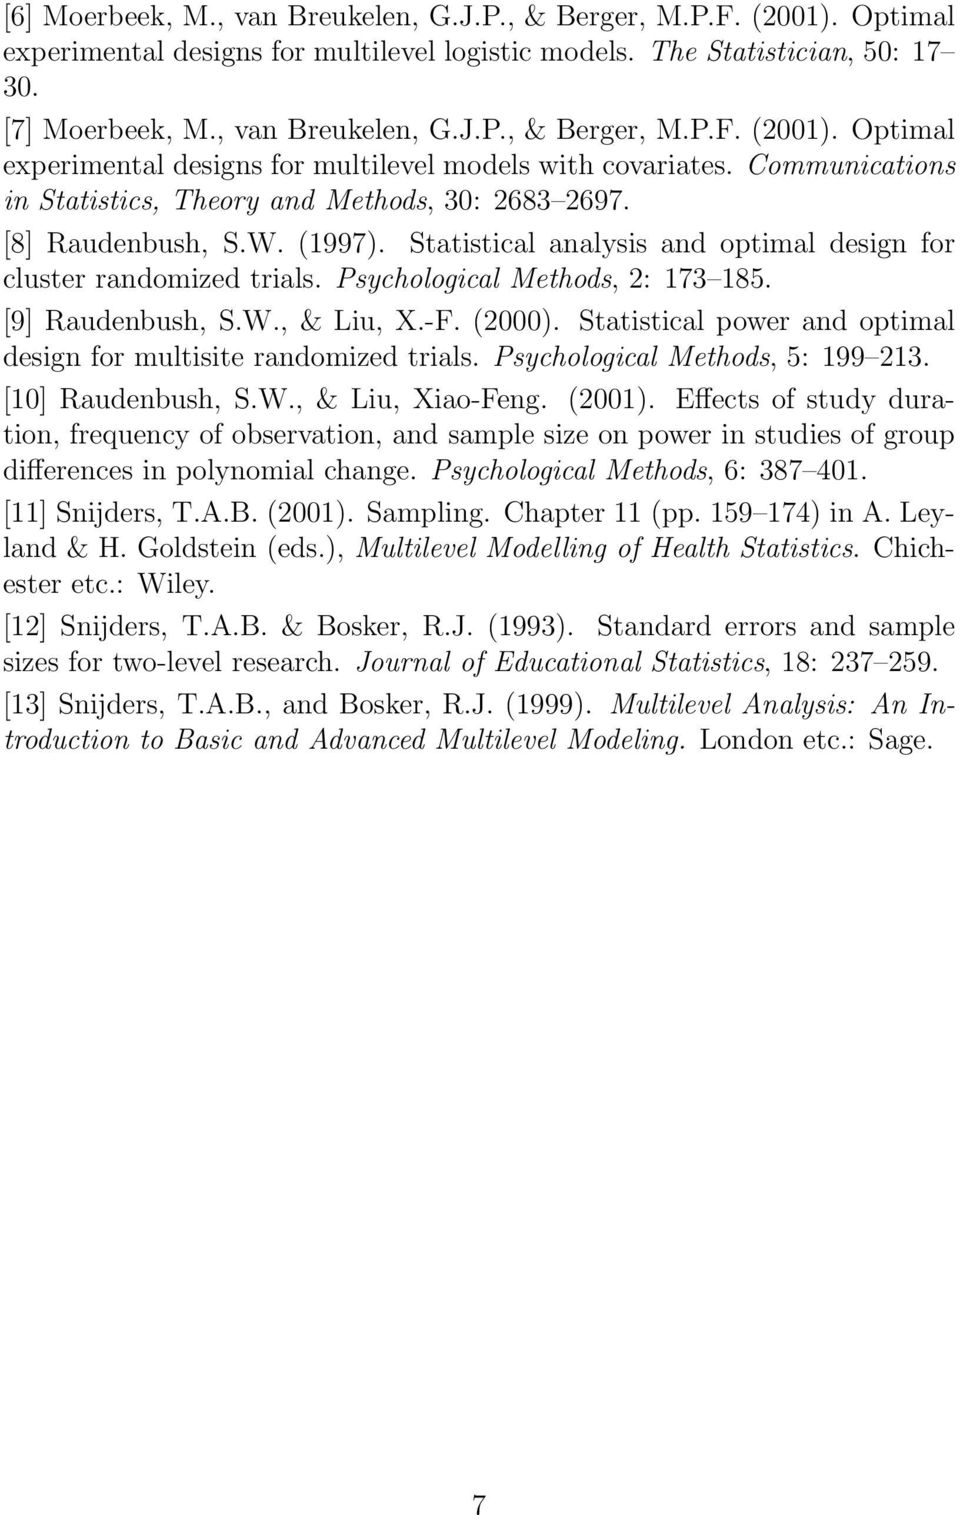 [9] Raudenbush, S.W., & Liu, X.-F. (2000). Statistical power and optimal design for multisite randomized trials. Psychological Methods, 5: 199 213. [10] Raudenbush, S.W., & Liu, Xiao-Feng. (2001).